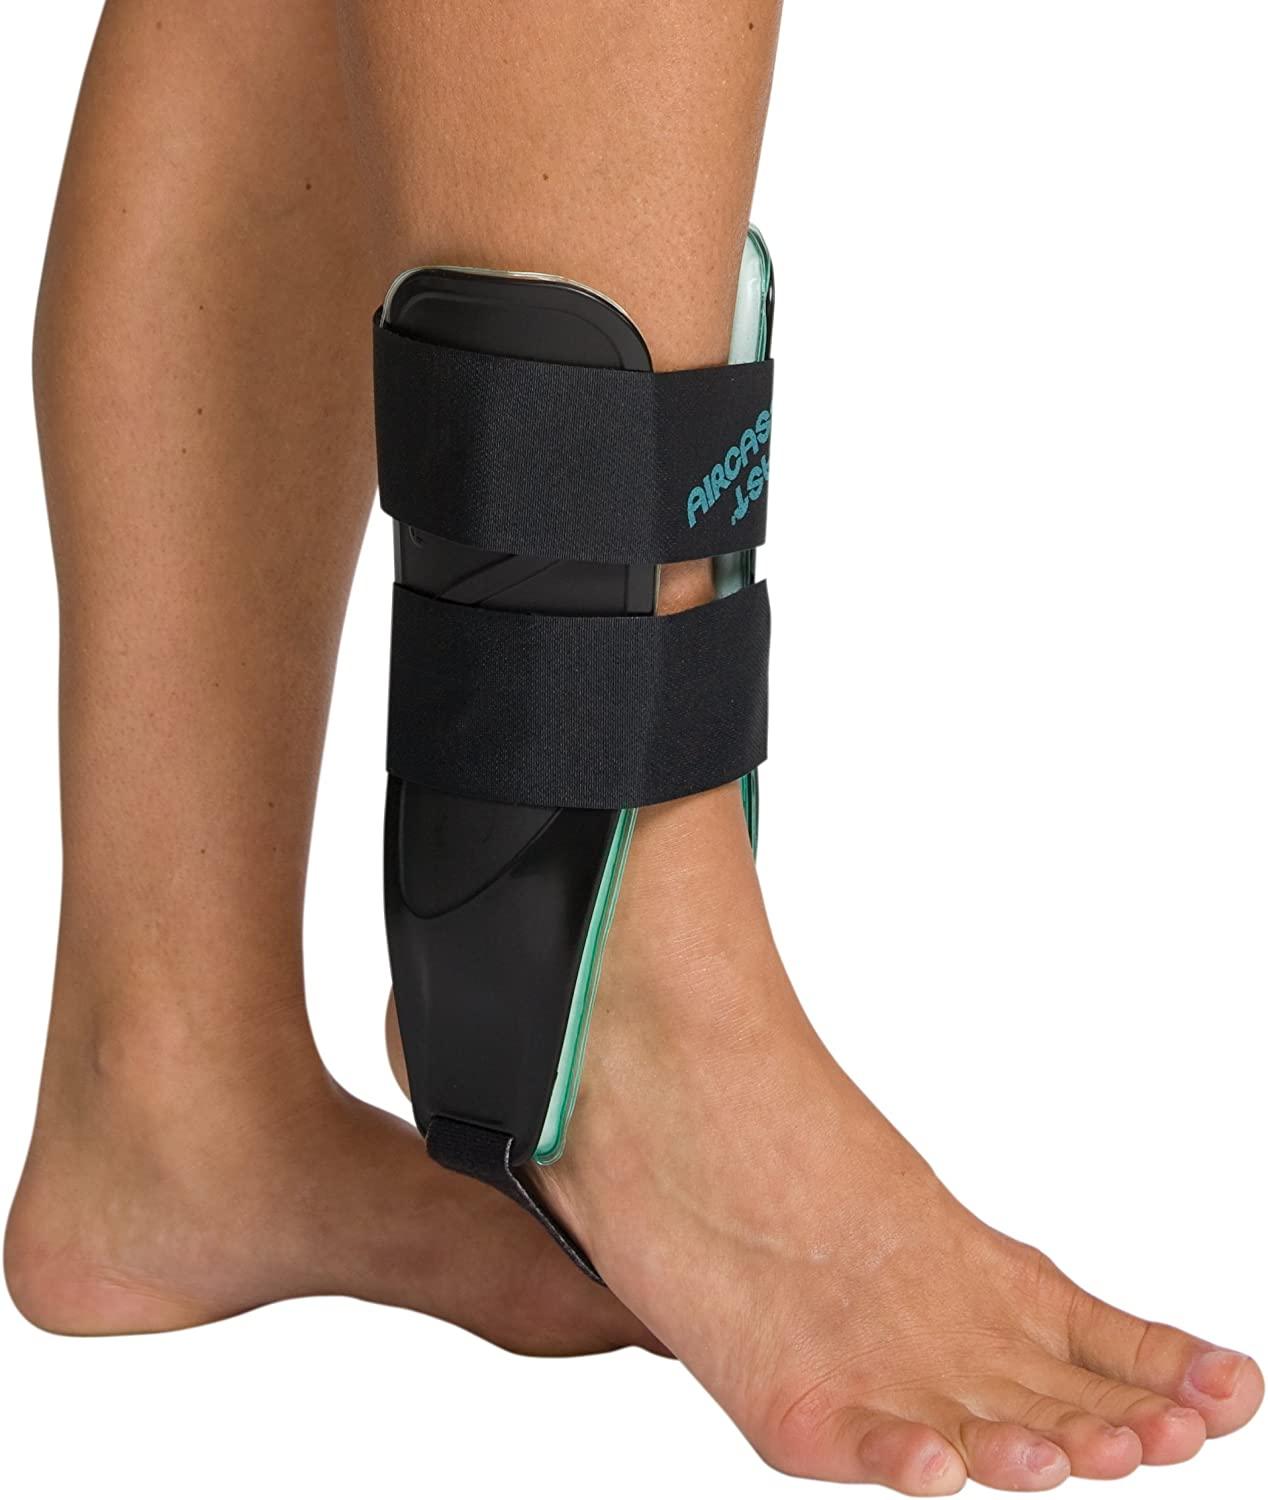 Aircast AC141AB08 Air-Stirrup Universe Ankle Support Brace, One Size Fits Most: Sports & Outdoors